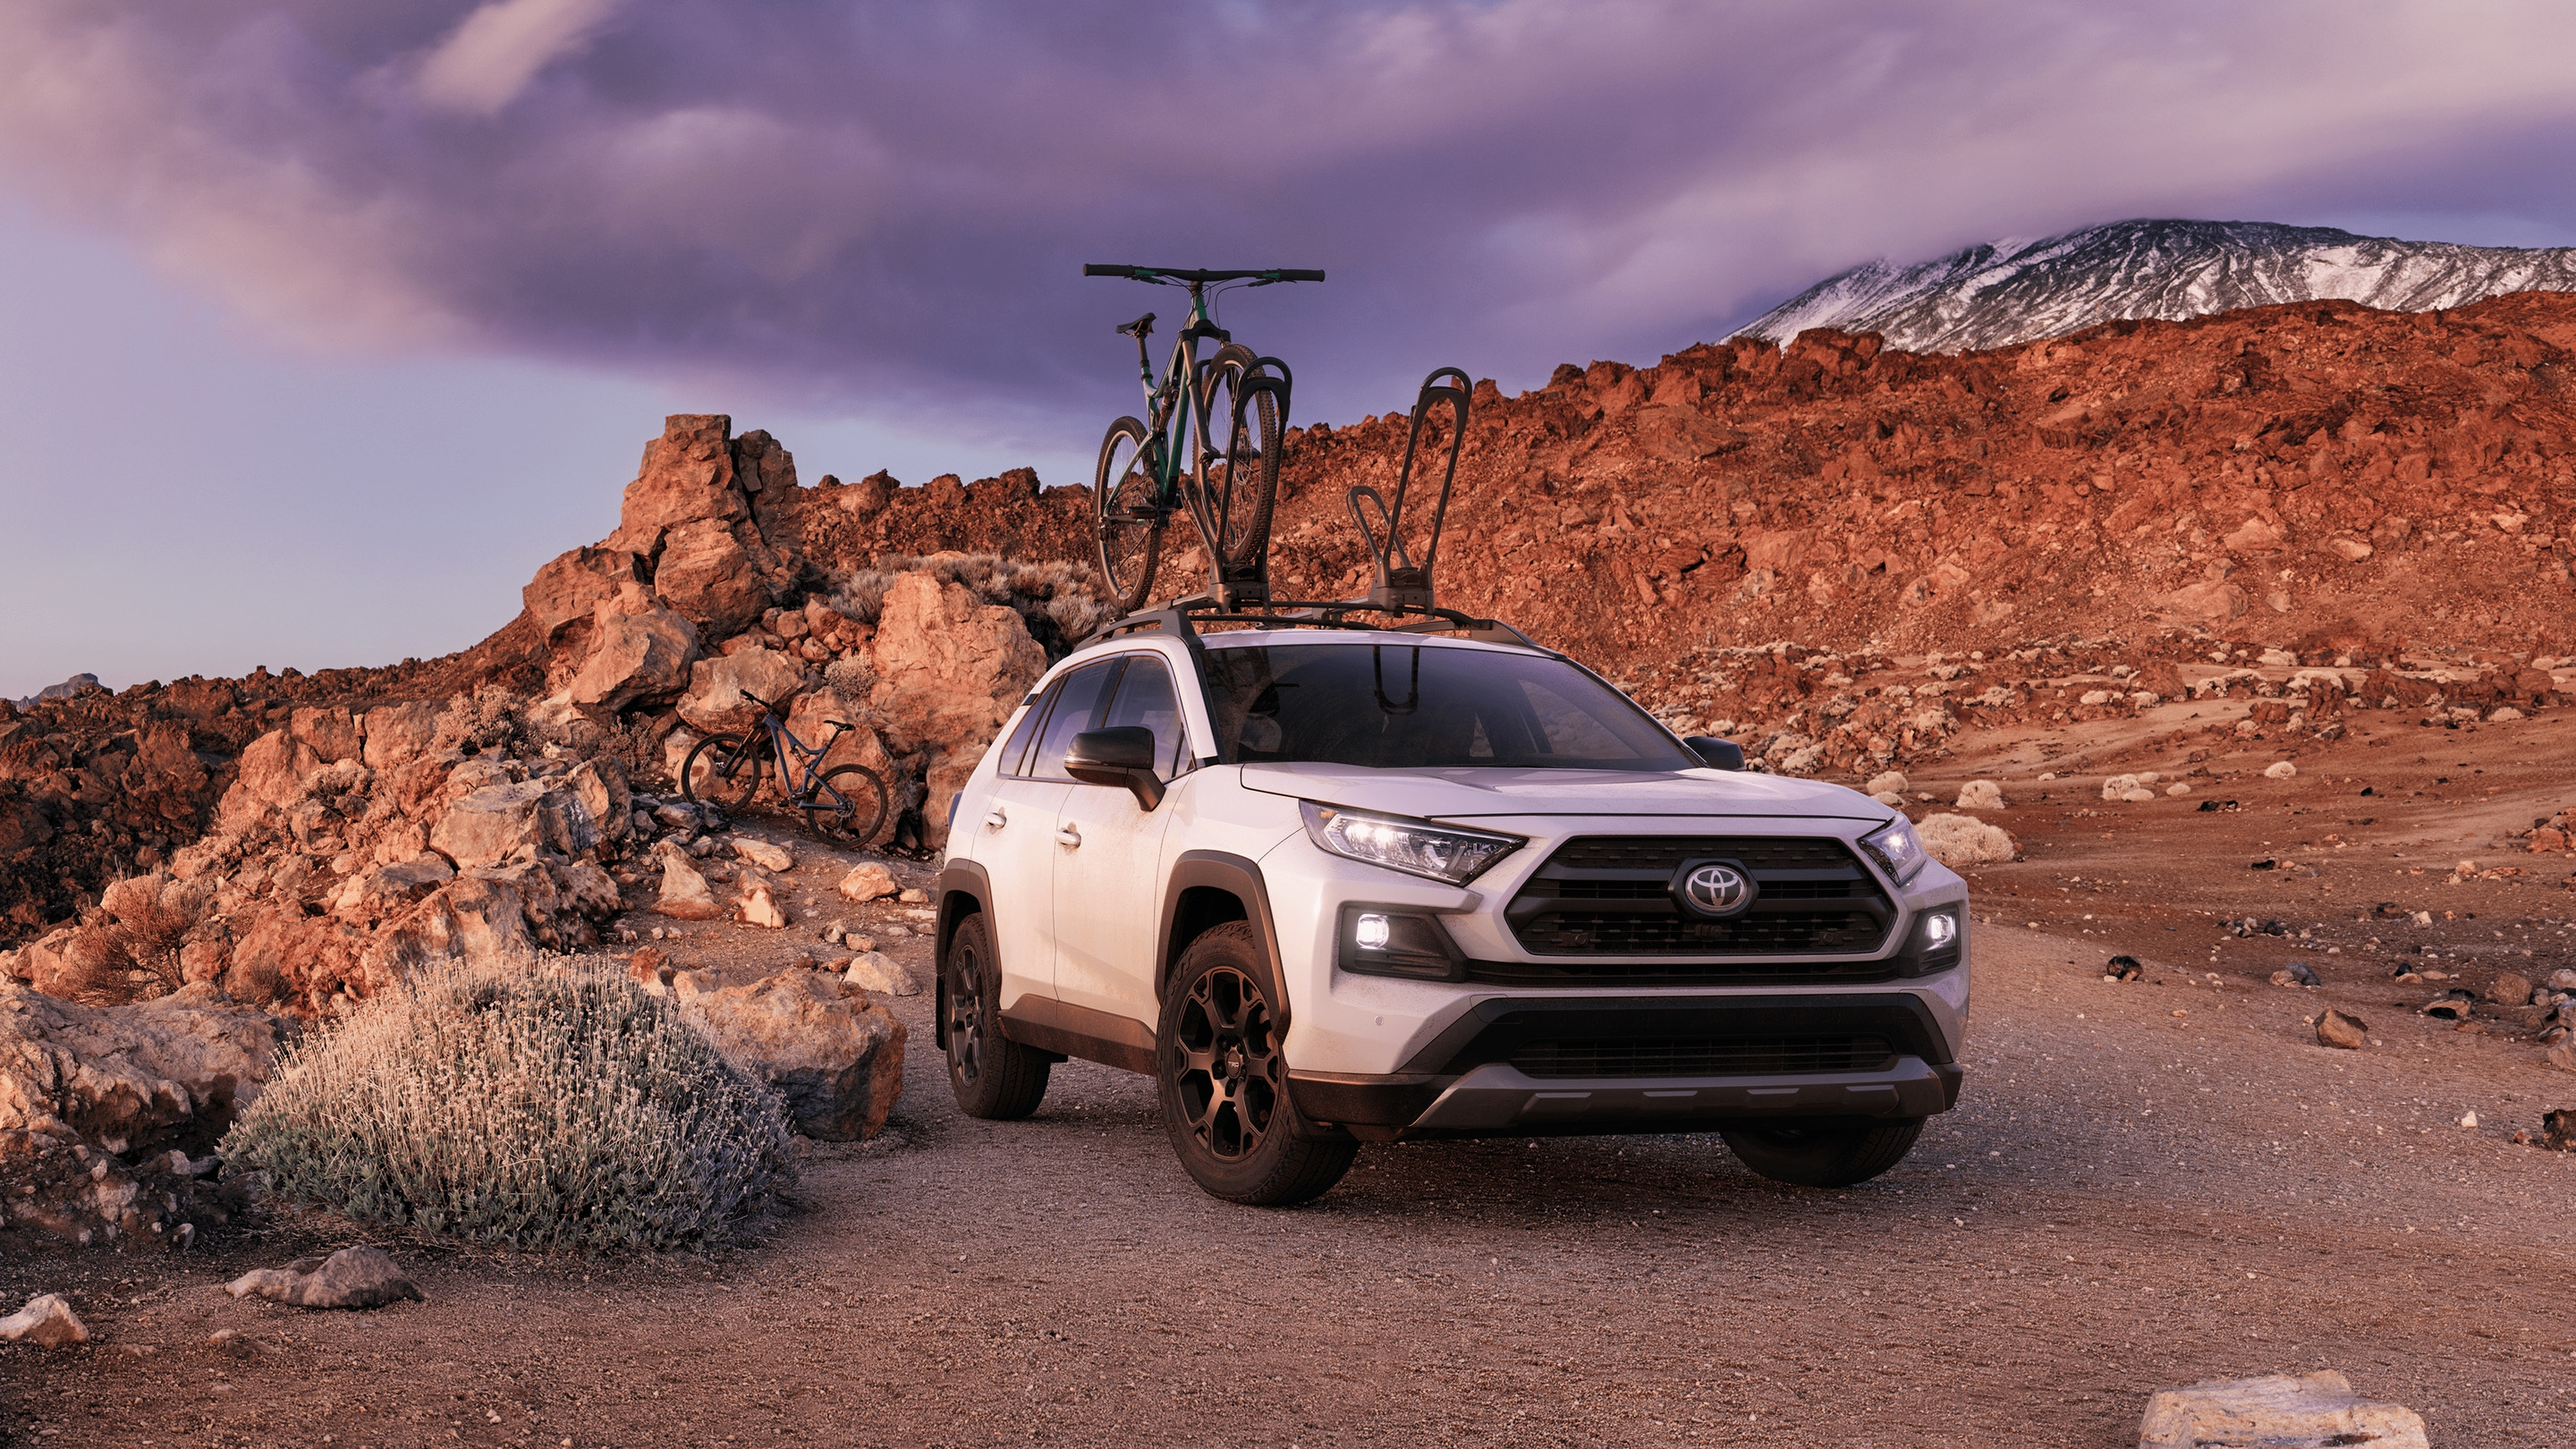 2020 Toyota RAV4 Lease near Sioux Falls, SD